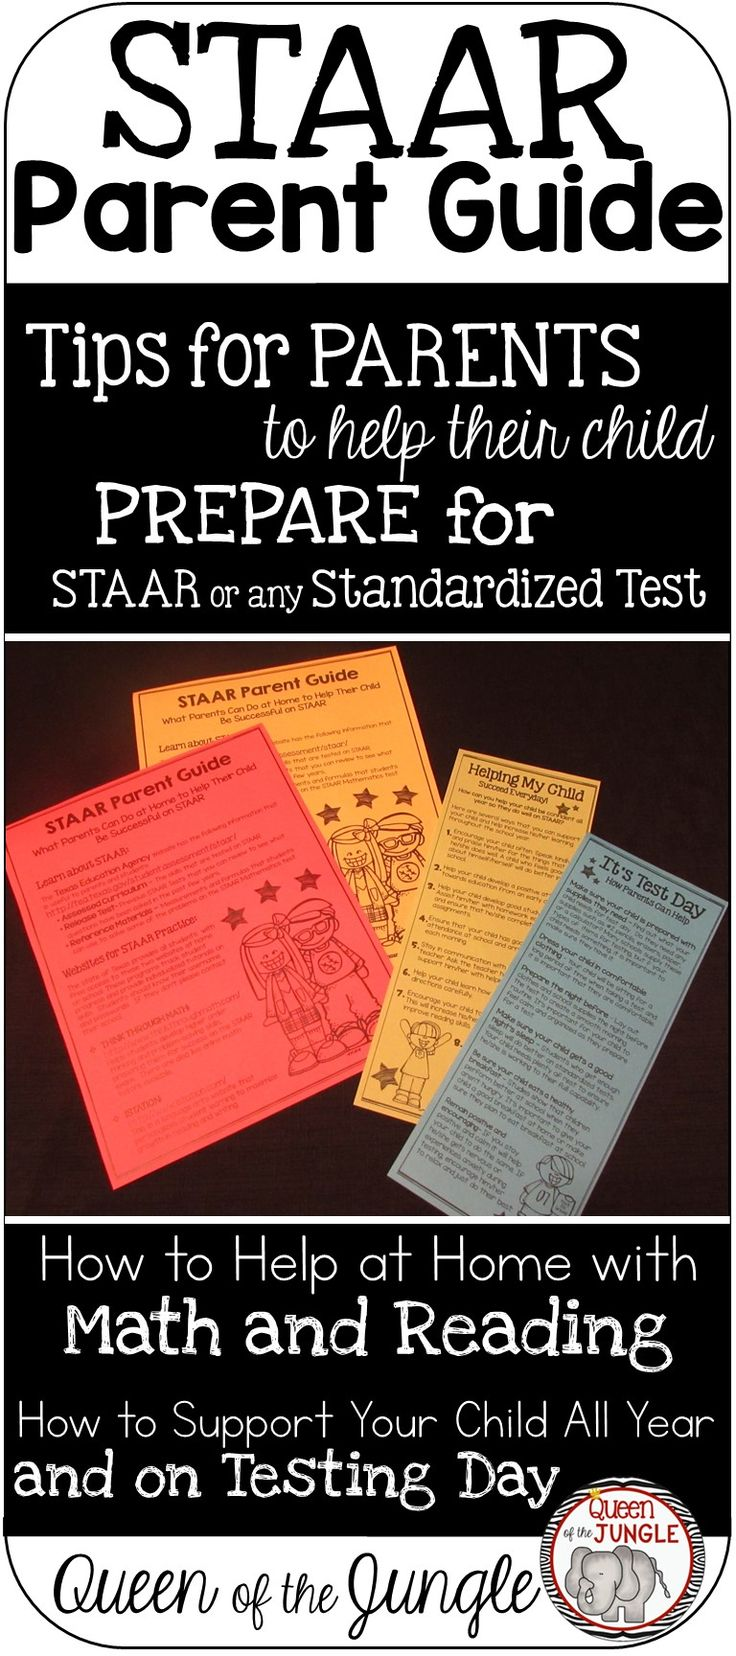 STAAR Standardized Test EDITABLE Parent Guide helps parents with ideas to support Math and Reading. Tips for improving achievement all year and on Test Day. Works with any Standardized Test. Editable so you can